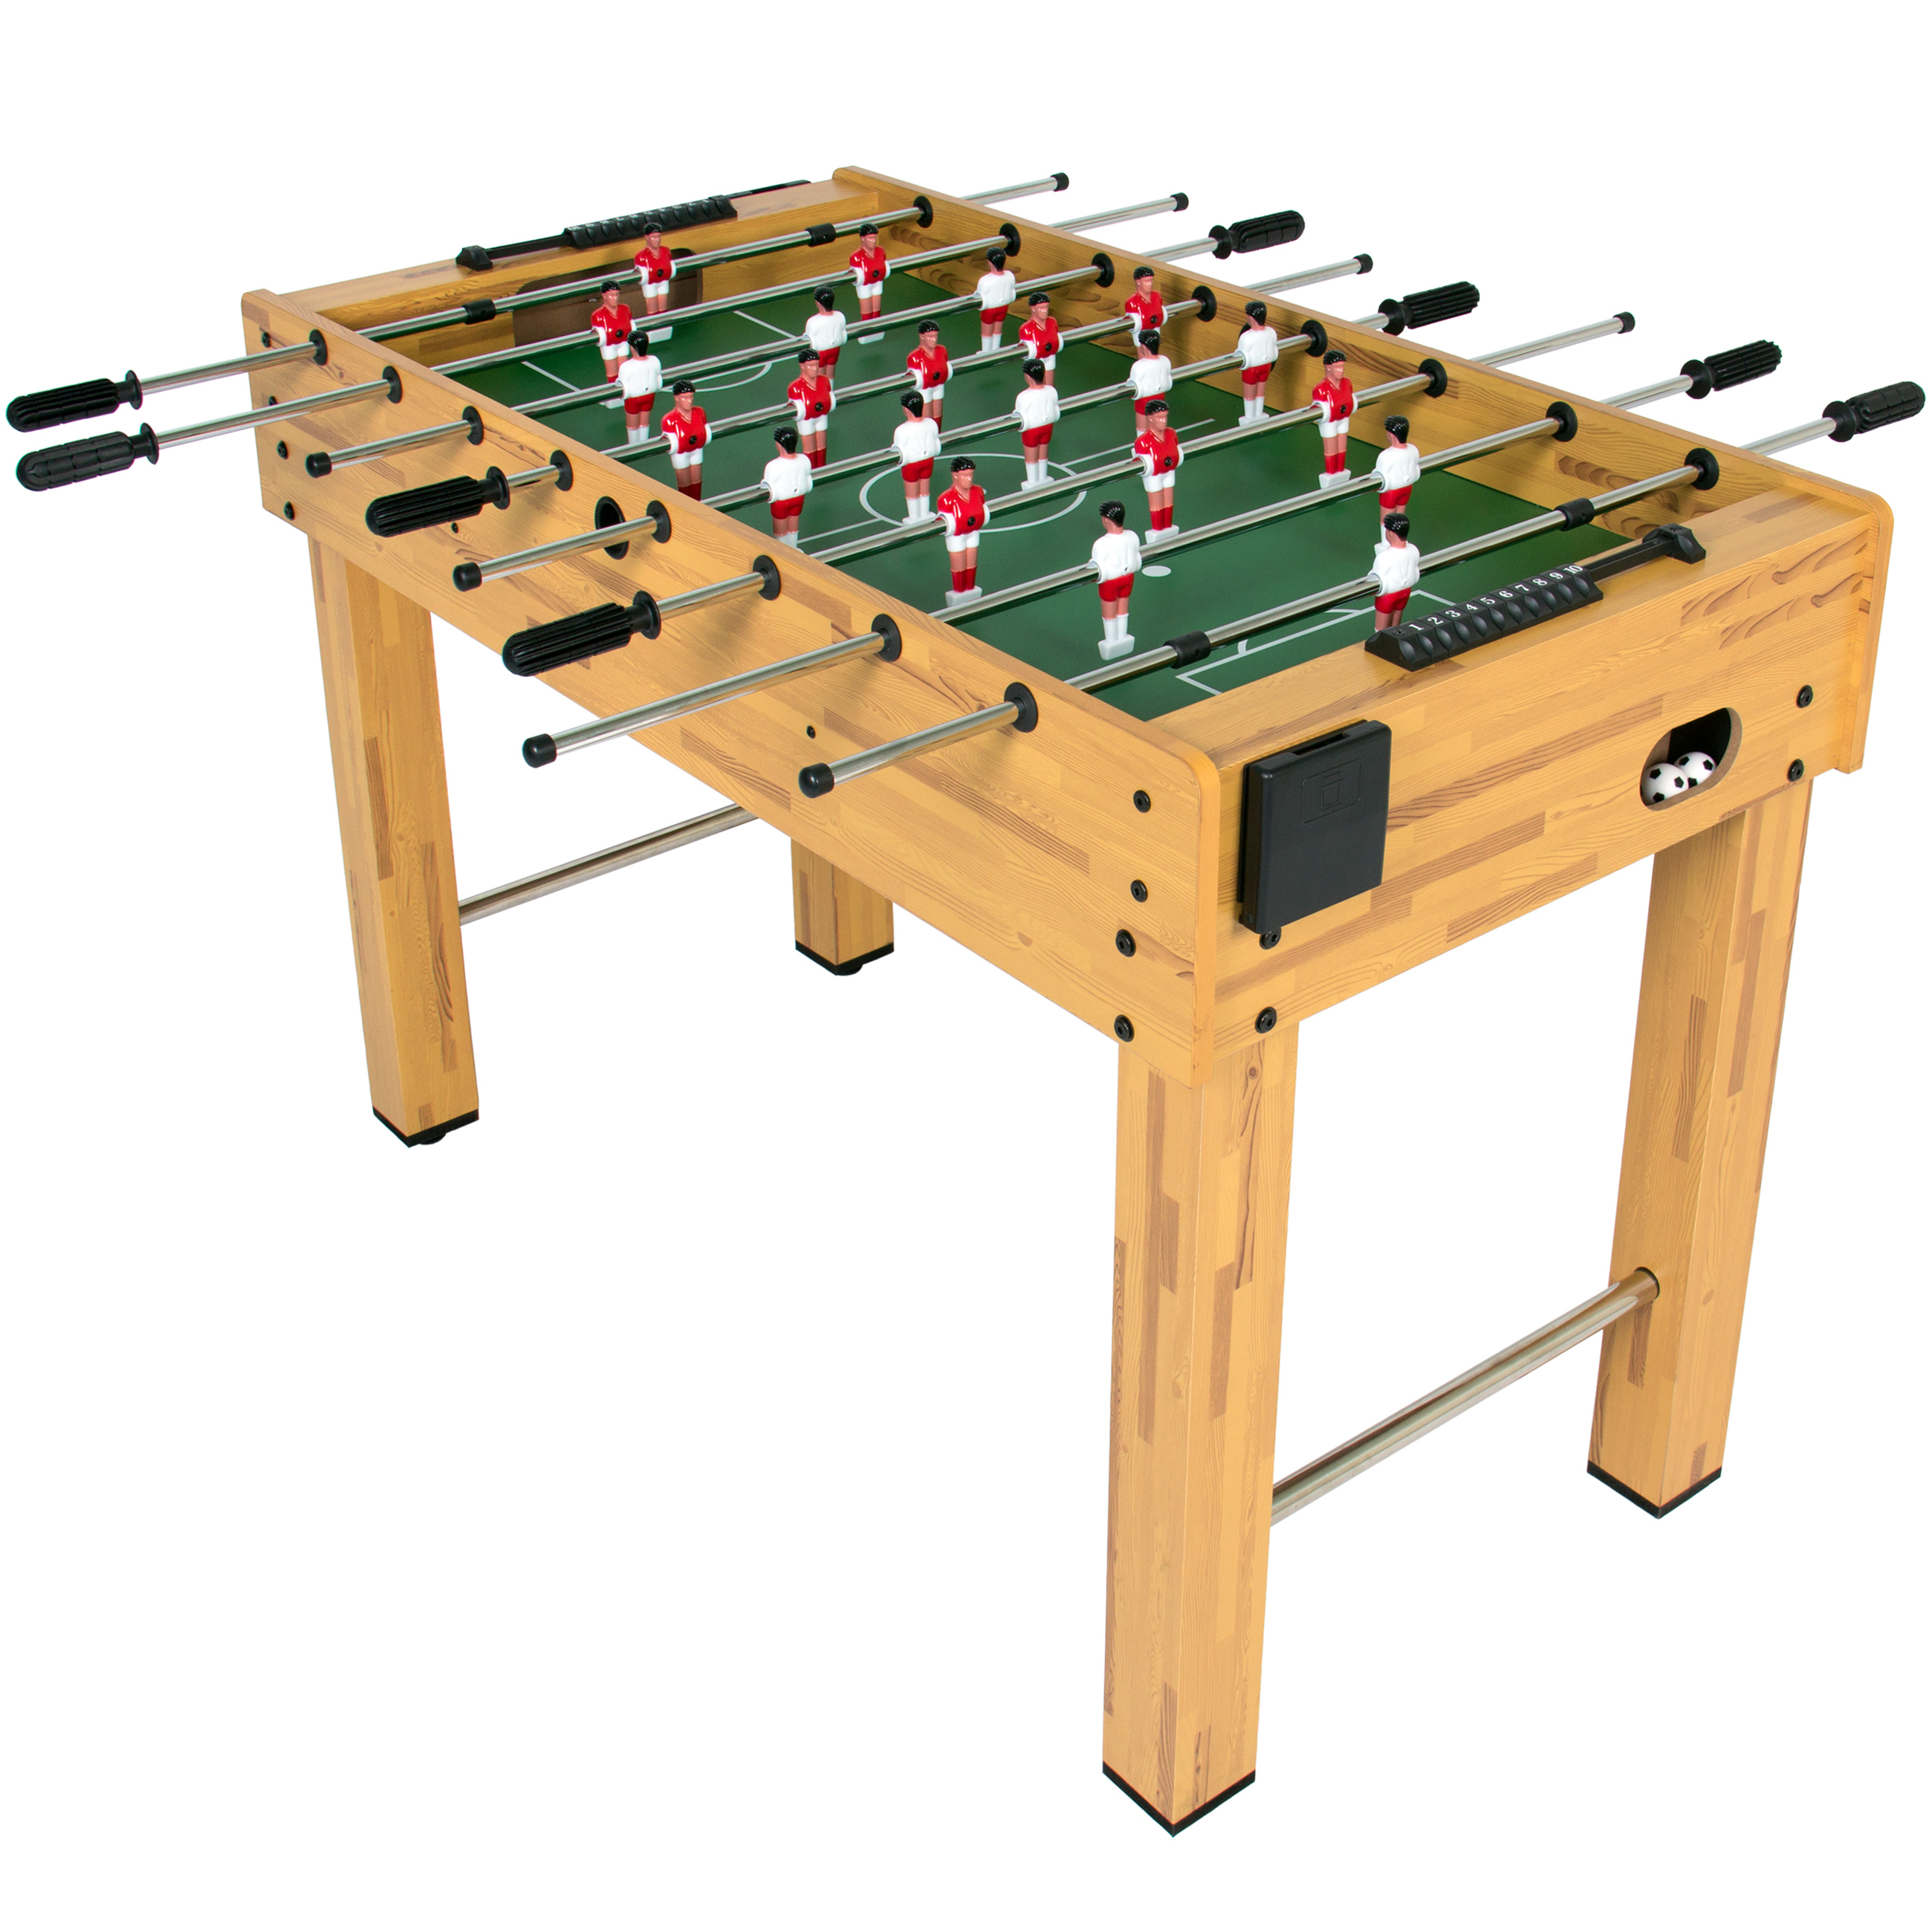 "BCP 48"" Foosball Table Competition Sized Soccer Arcade Game Room football Sports by"